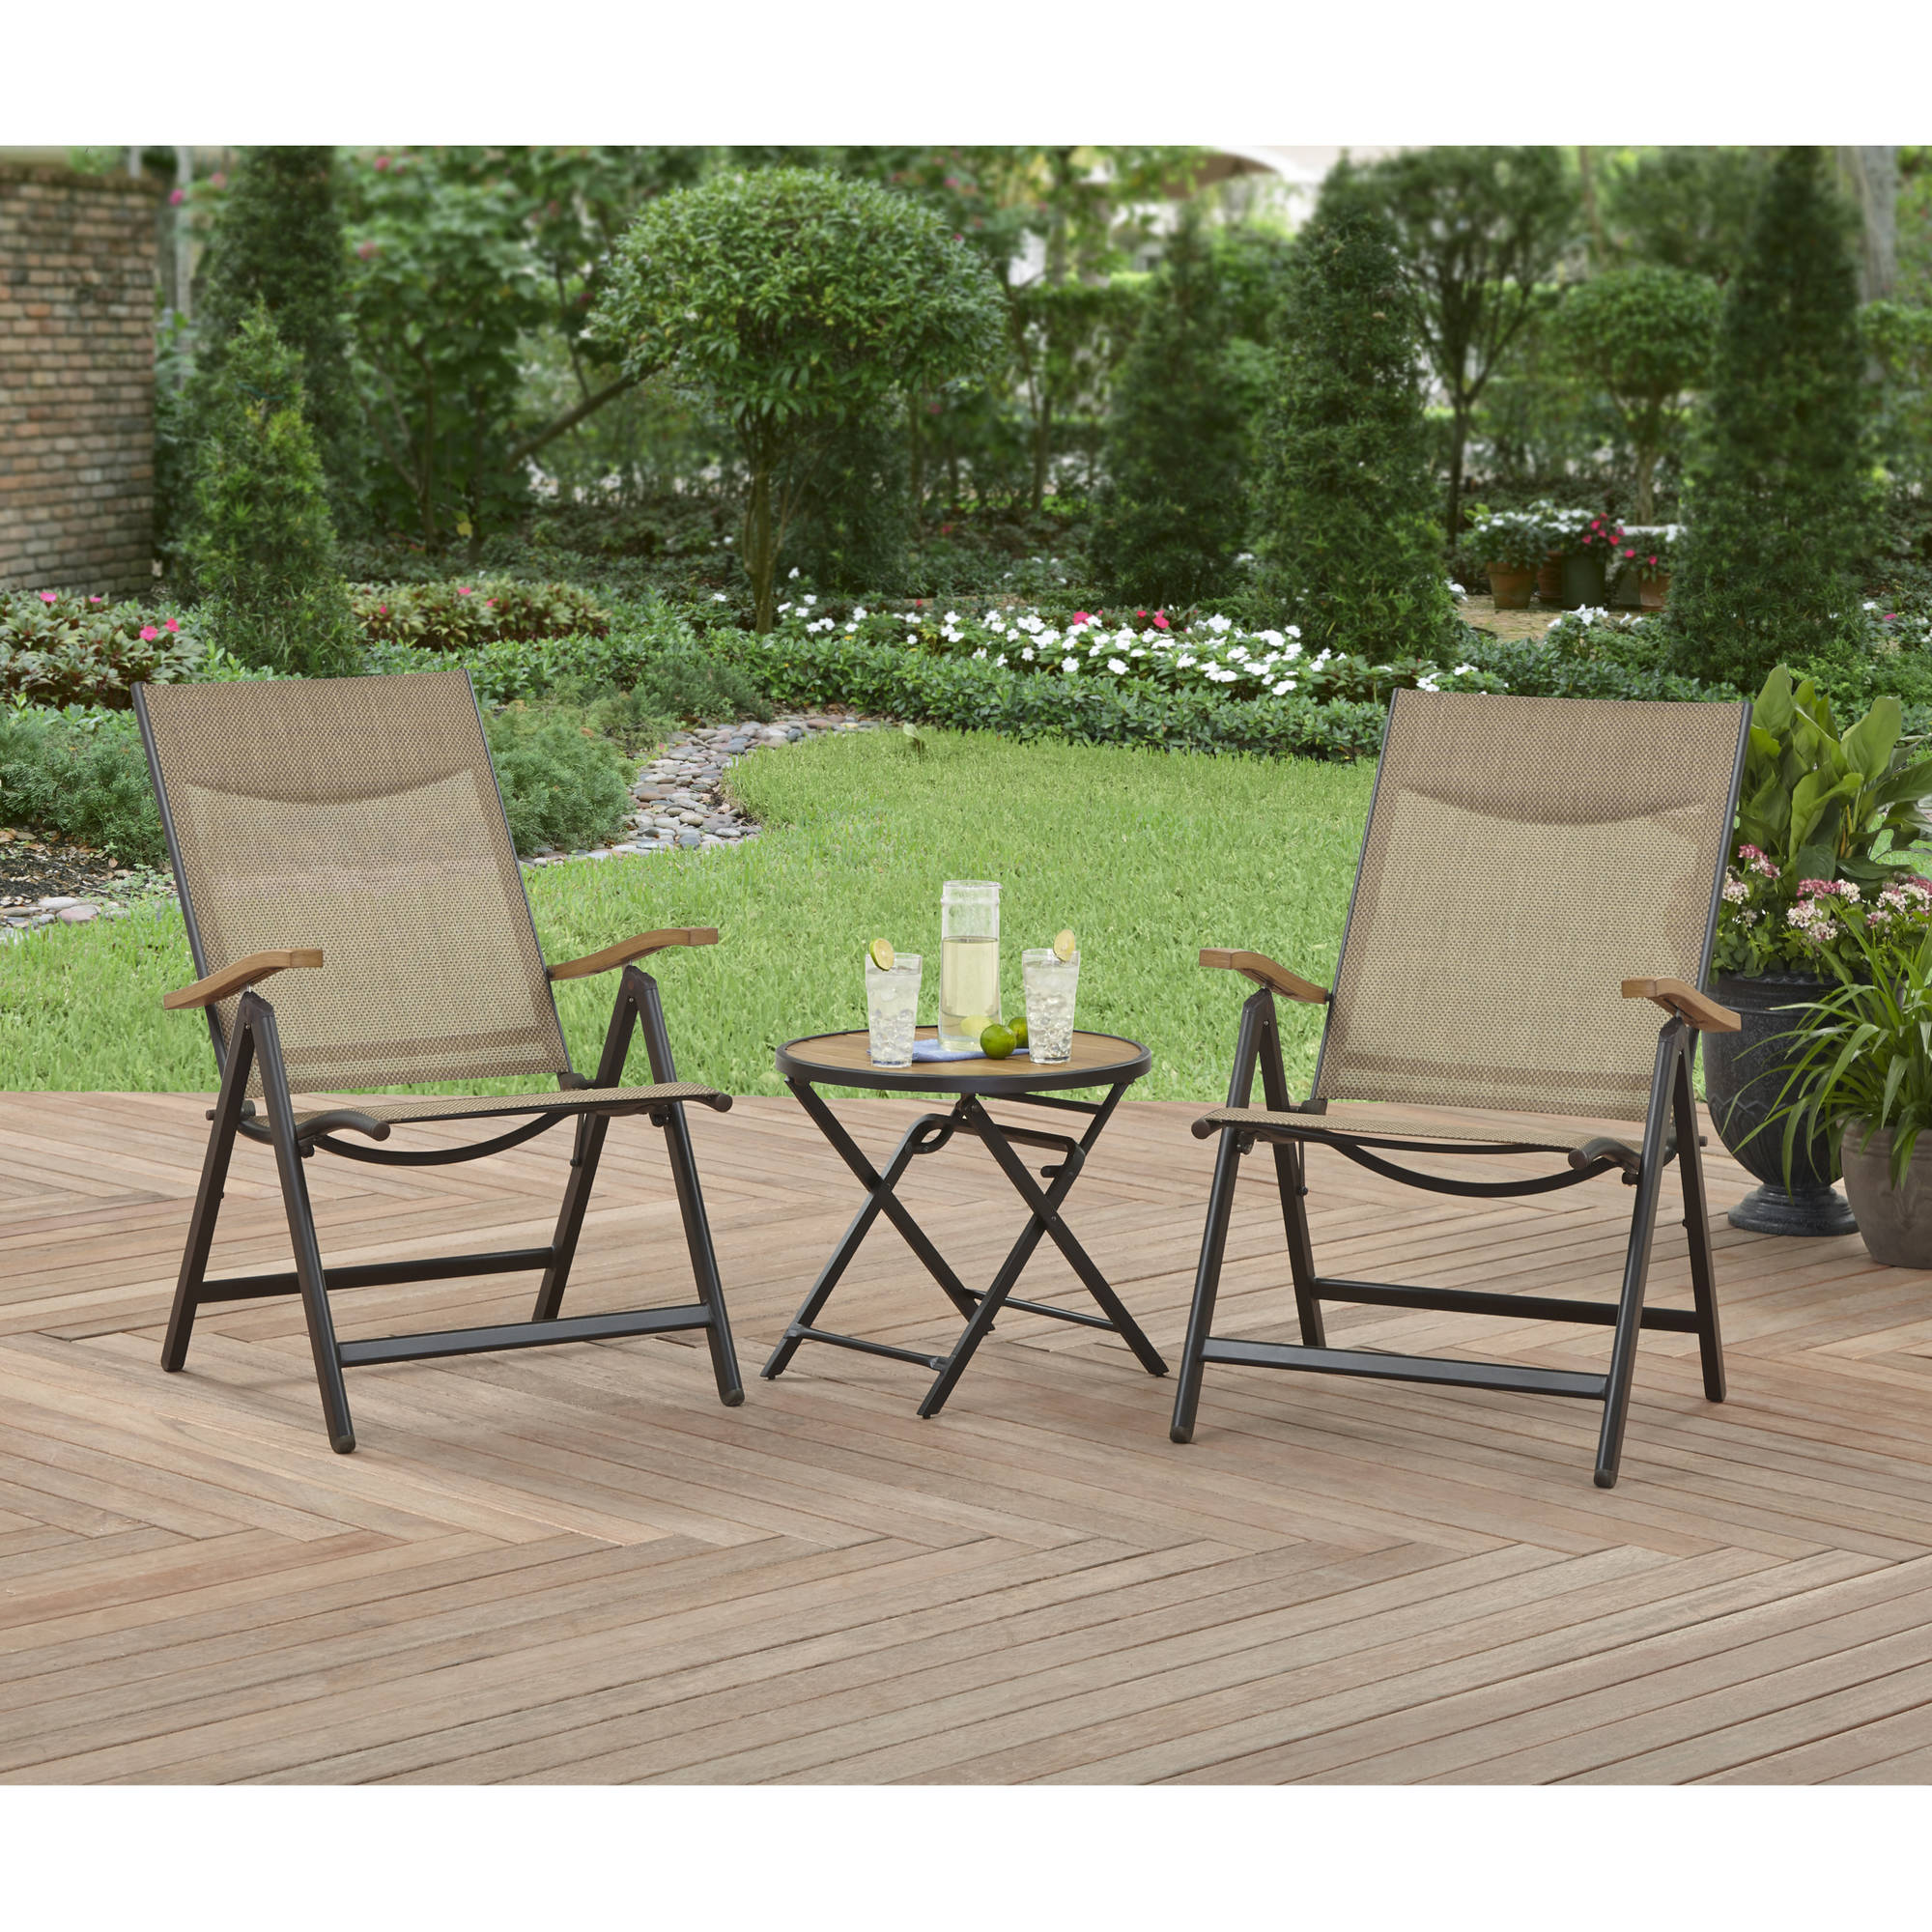 Small Patio Table And Chairs Part - 26: Better Homes And Gardens Quail Ridge 3-Piece Folding Bistro Set -  Walmart.com